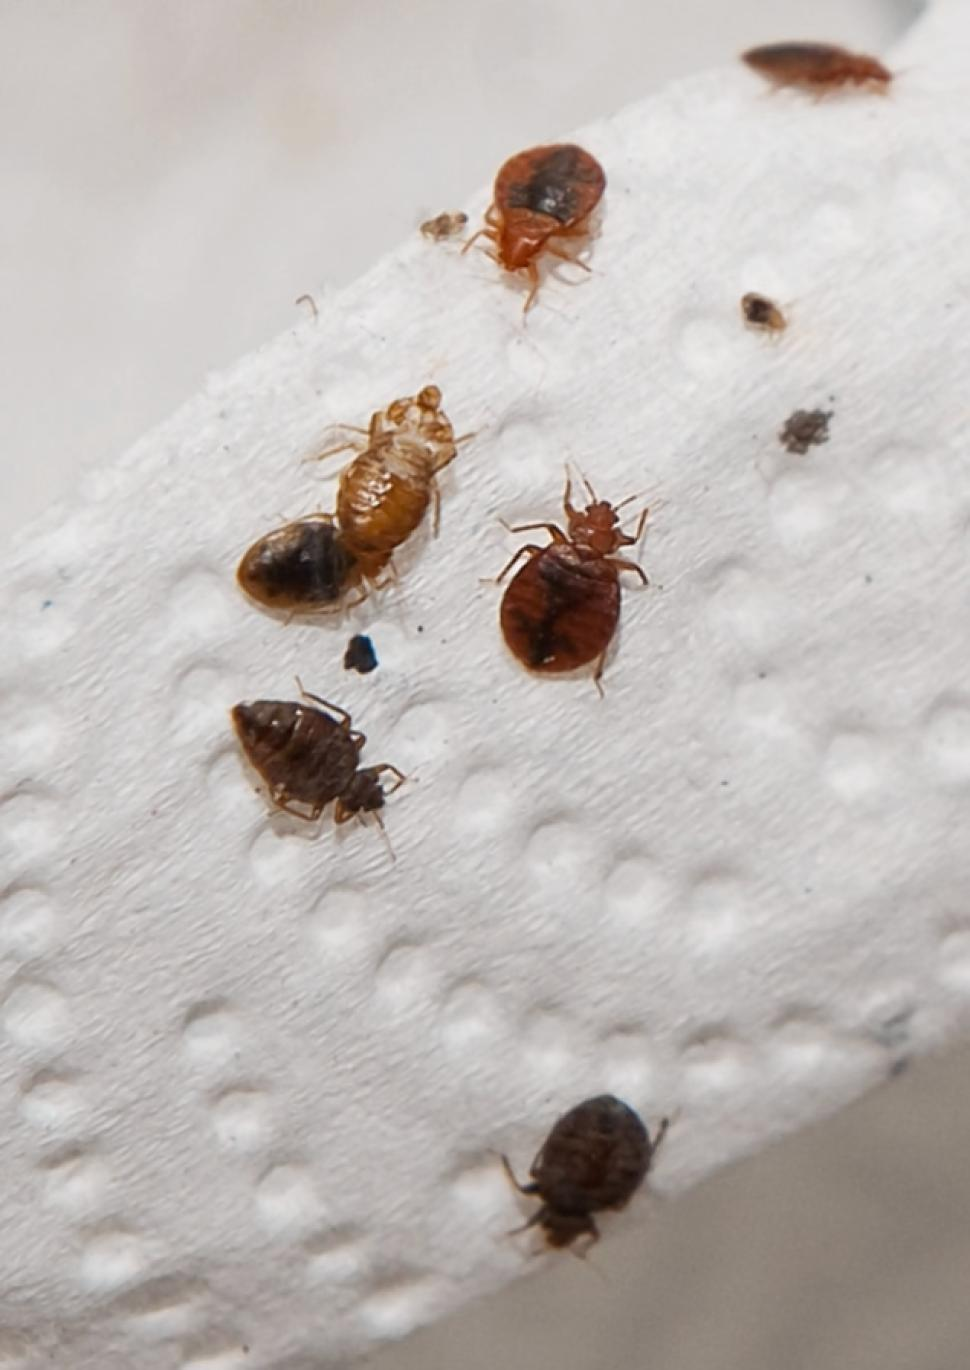 What To Look For In Your Bed For Bed Bugs